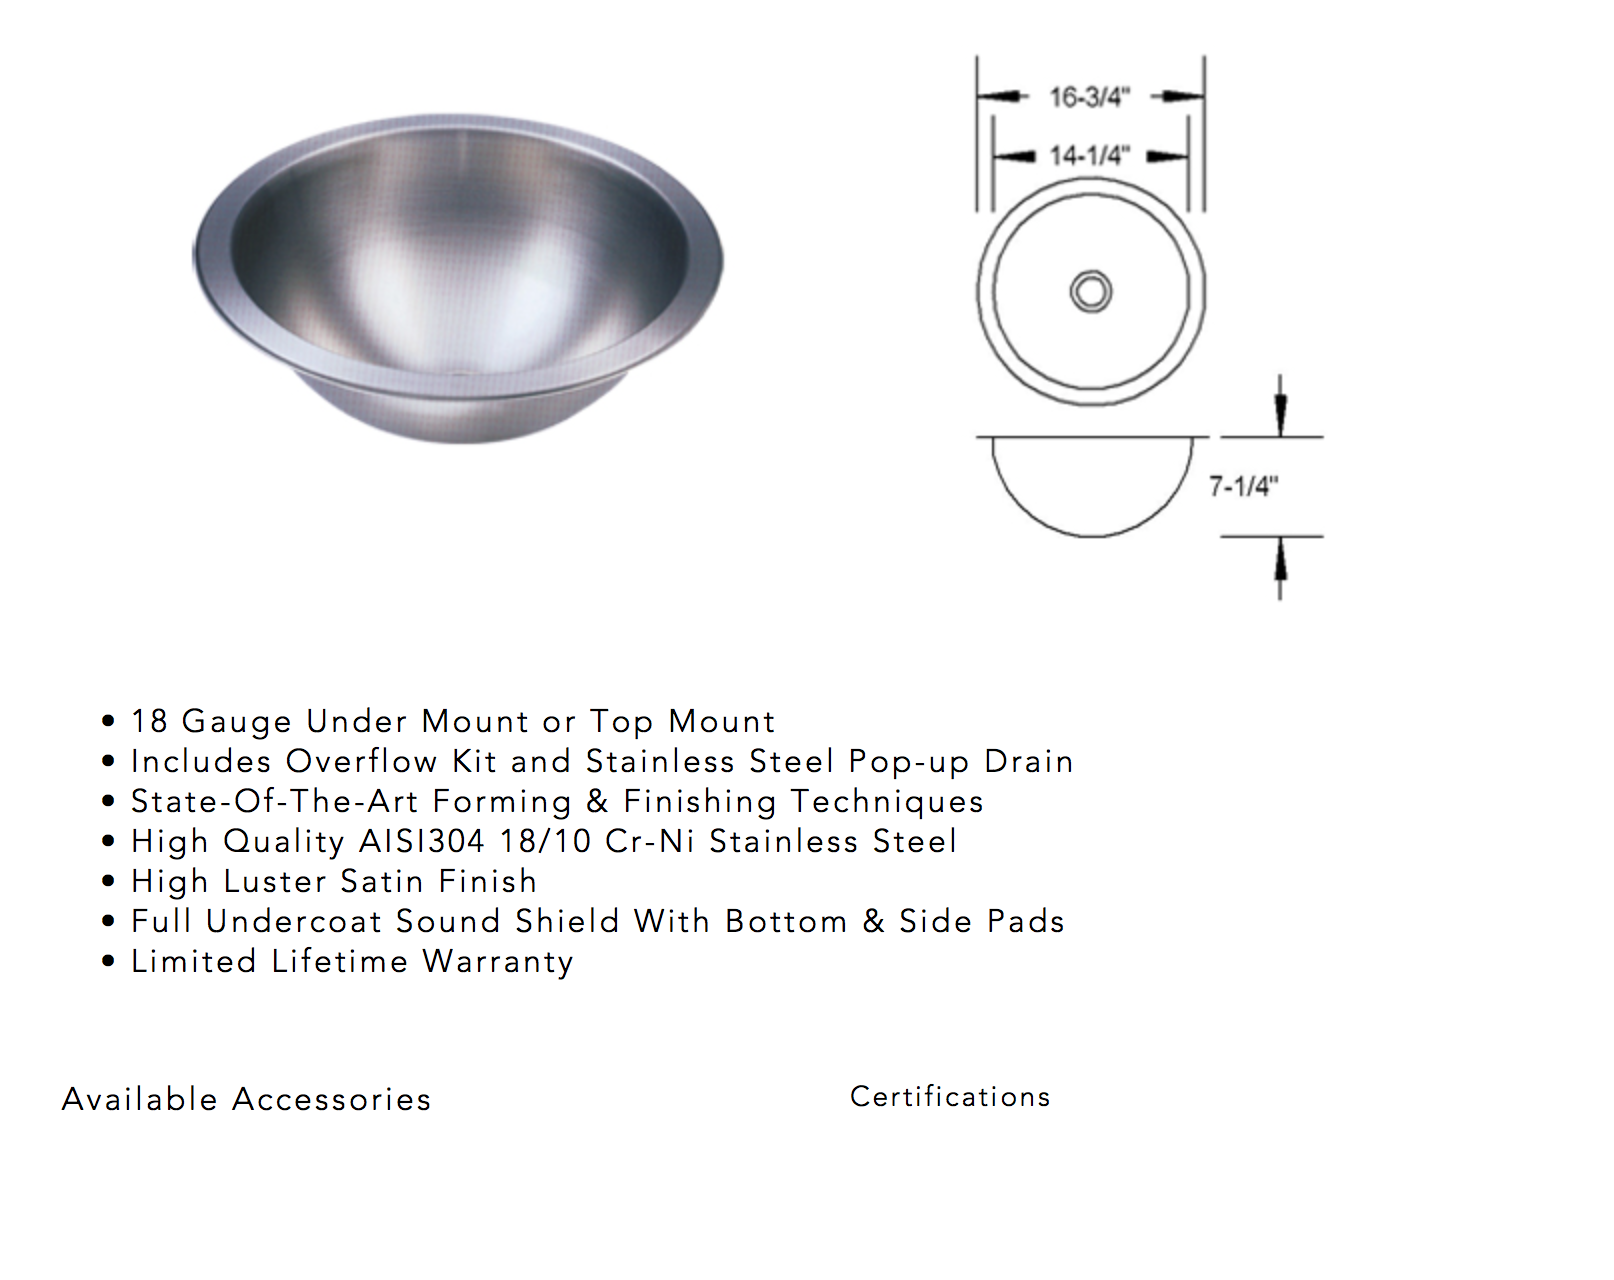 image showing specifications of undermount sink for quartz counters in tacoma, wa